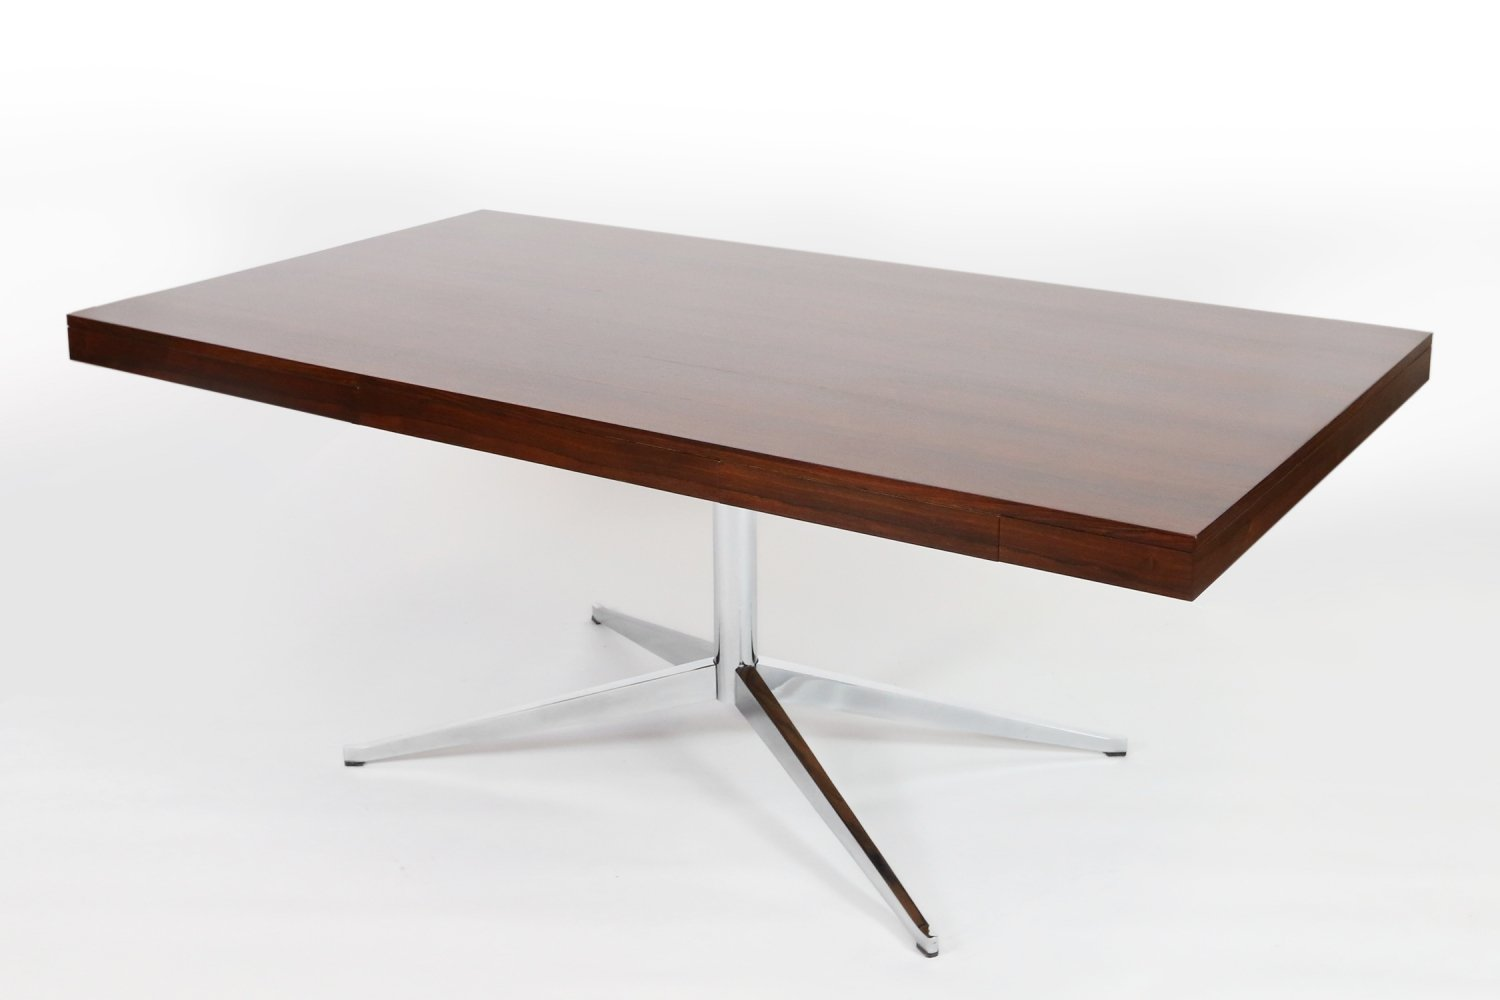 Vintage Florence Knoll Partners Desk or Executive Table in Rosewood, 1960s